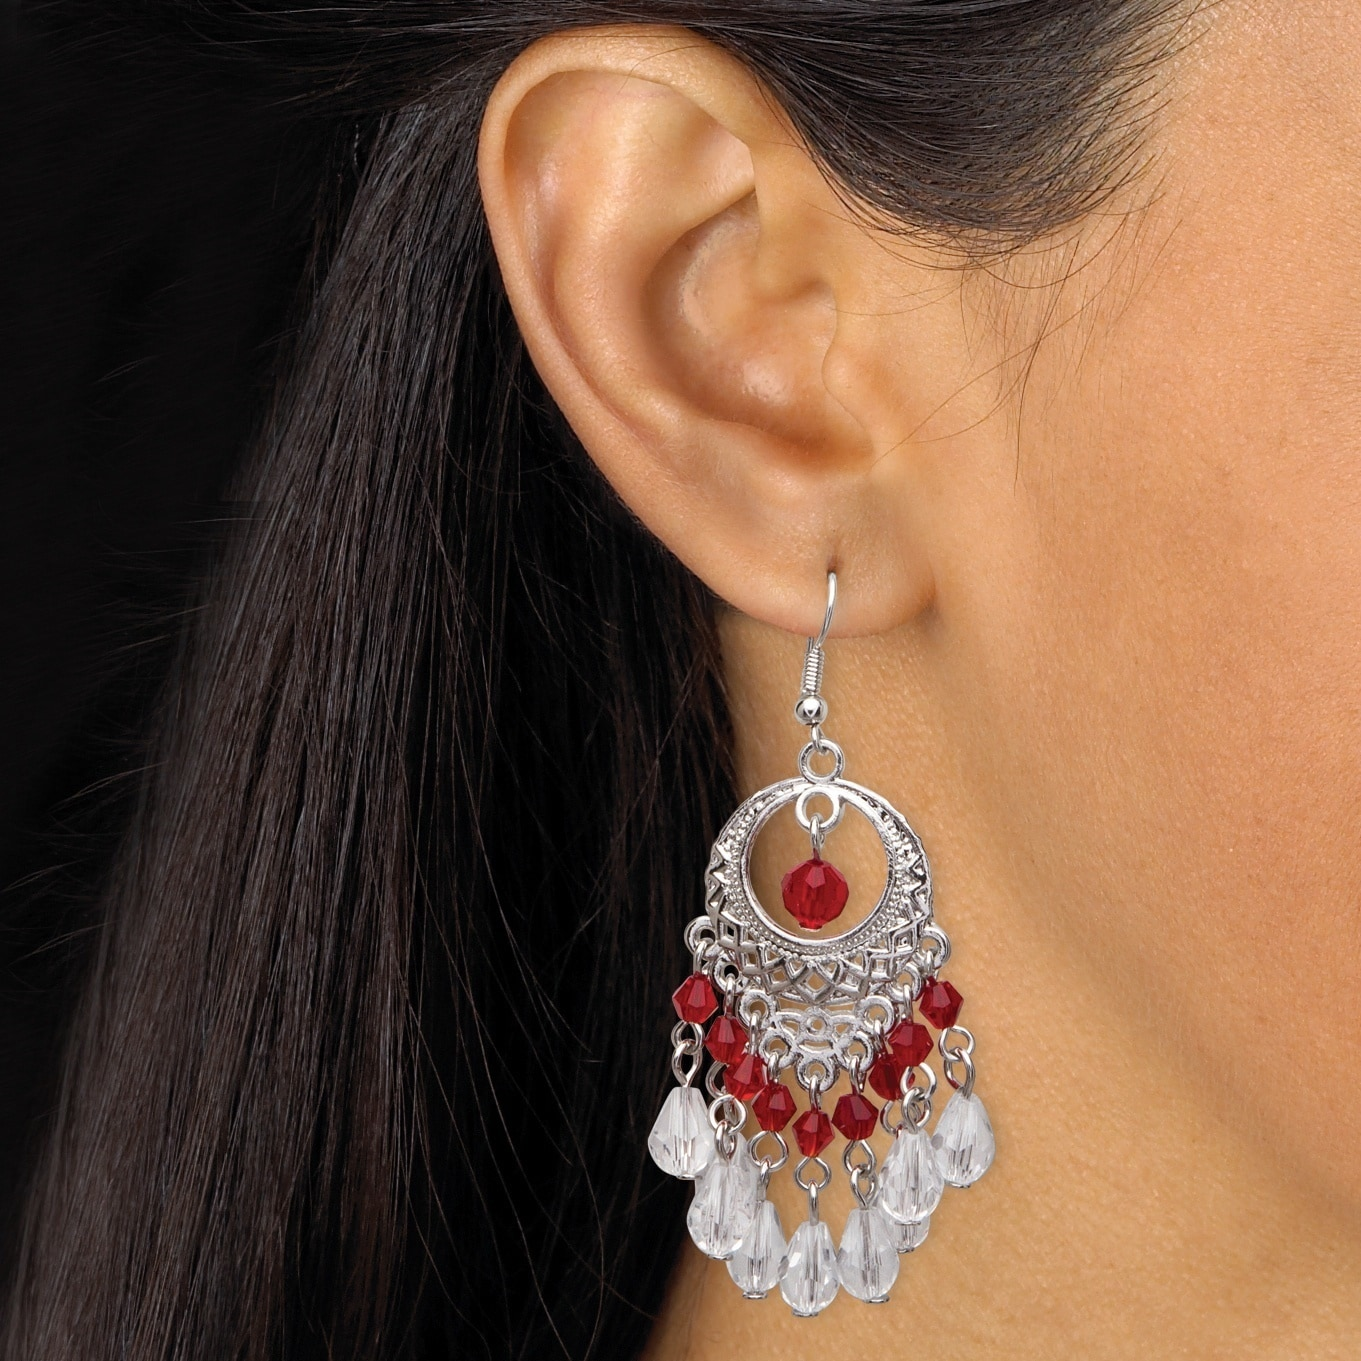 Color fun silvertone red crystal chandelier earrings free shipping color fun silvertone red crystal chandelier earrings free shipping on orders over 45 overstock 19910544 arubaitofo Choice Image